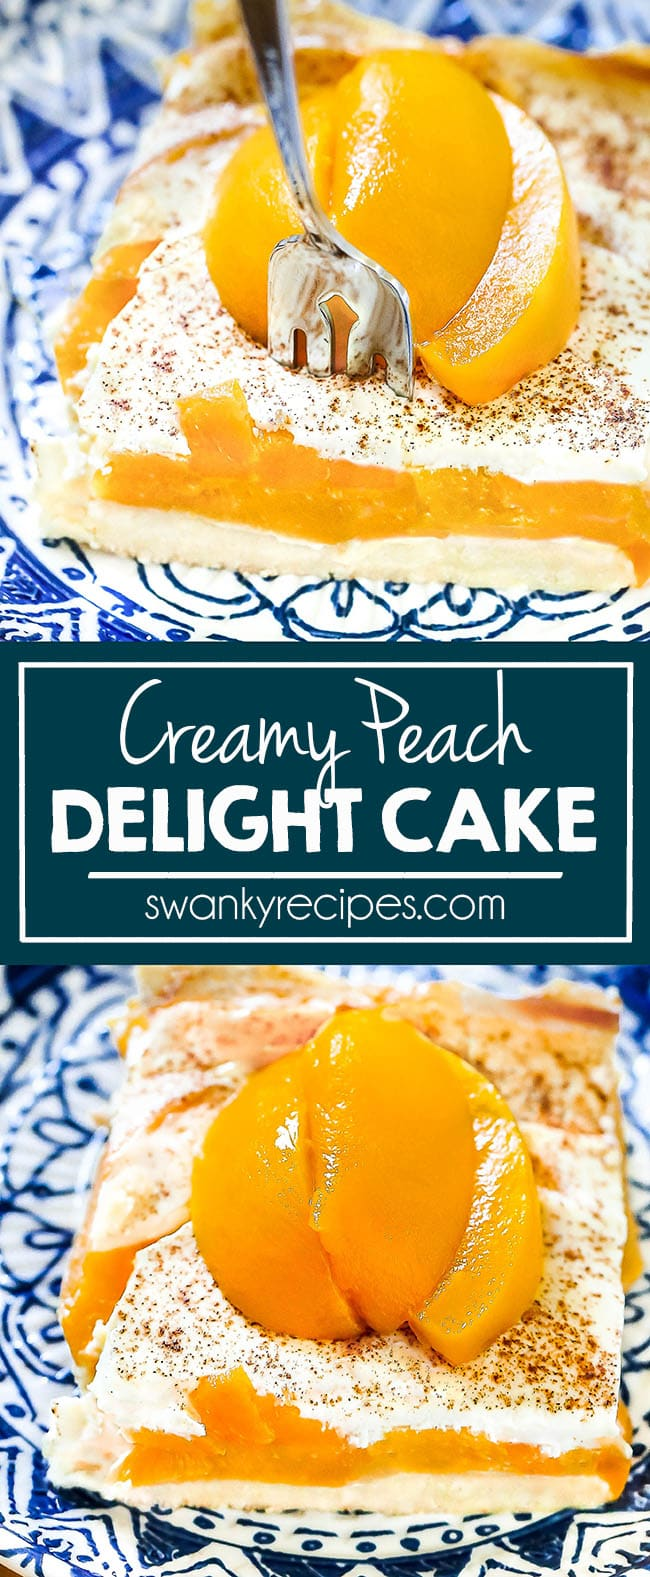 Peach Delight is a very easy cake recipe made with butter, yellow cake mix, canned peaches, sour cream, egg yolks, and cinnamon and it's the easiest cake this summer. A perfect casserole dessert cake with peaches and a creamy cool topping for summer parties and cookouts!